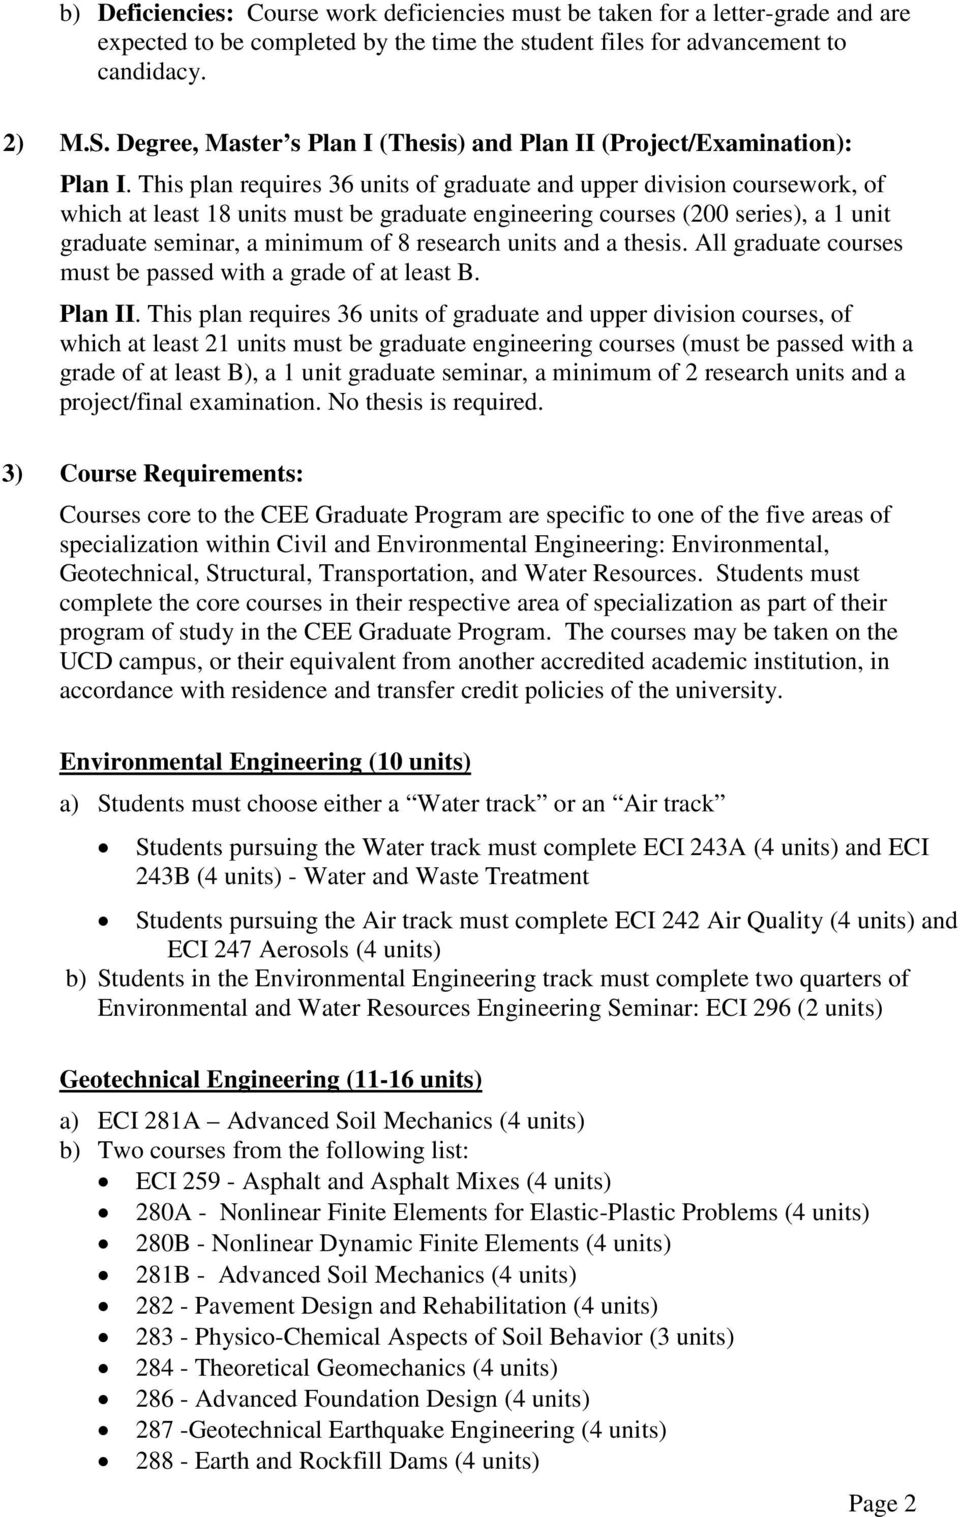 This plan requires 36 units of graduate and upper division coursework, of which at least 18 units must be graduate engineering courses (200 series), a 1 unit graduate seminar, a minimum of 8 research